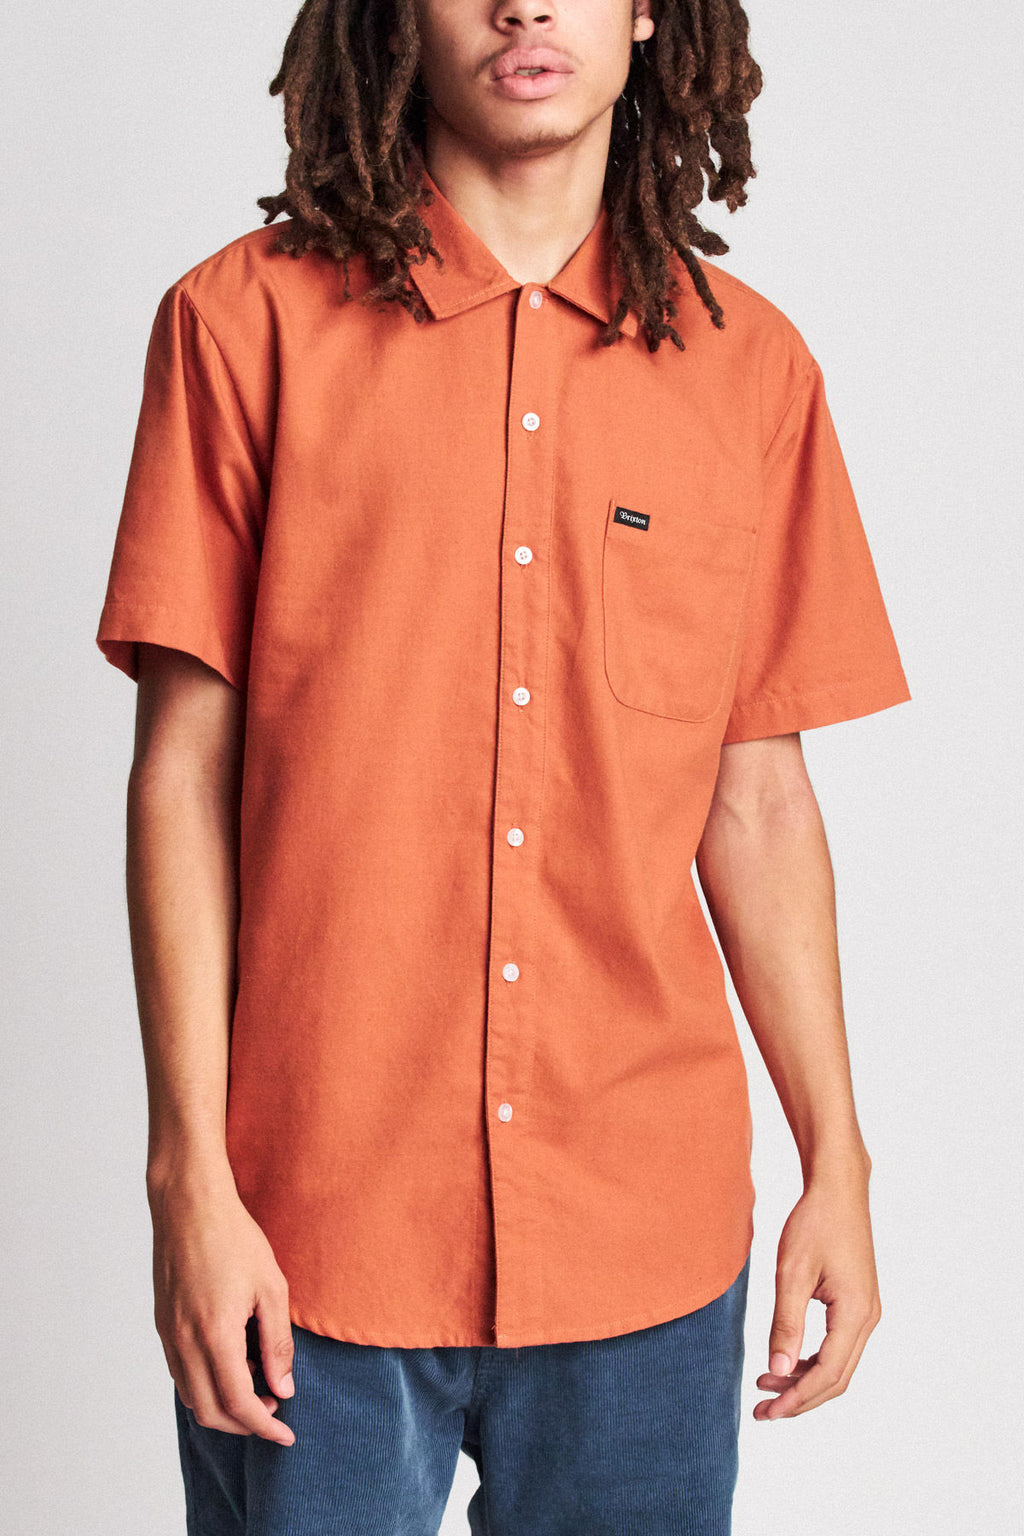 Brixton - Charter Oxford Short Sleeve Shirt - Henna - Guys